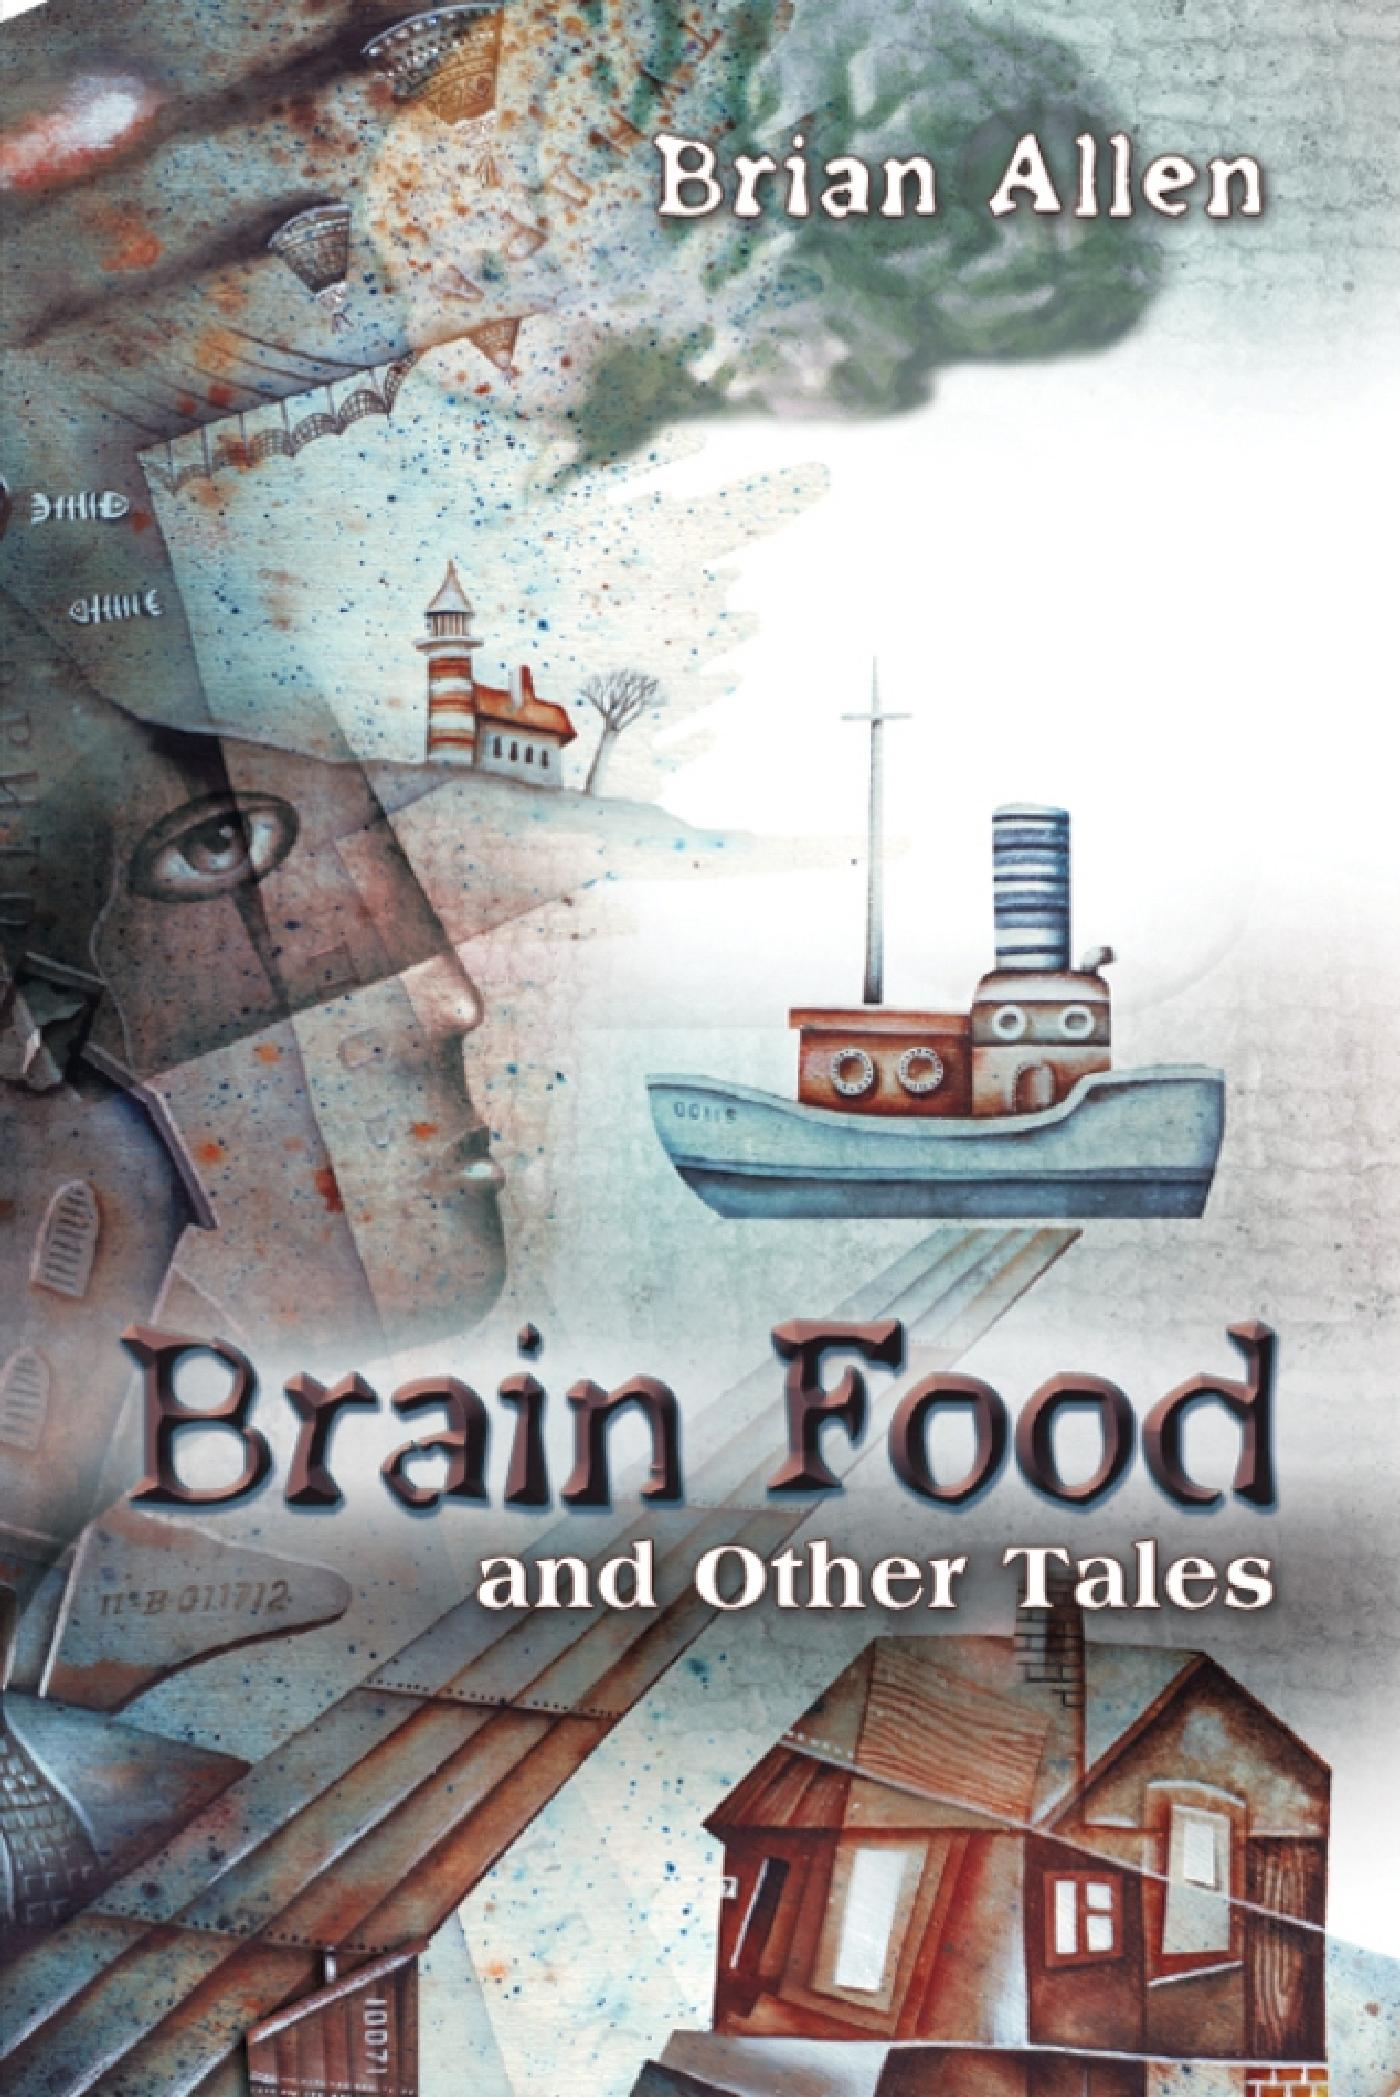 BRAIN FOOD AND OTHER TALES